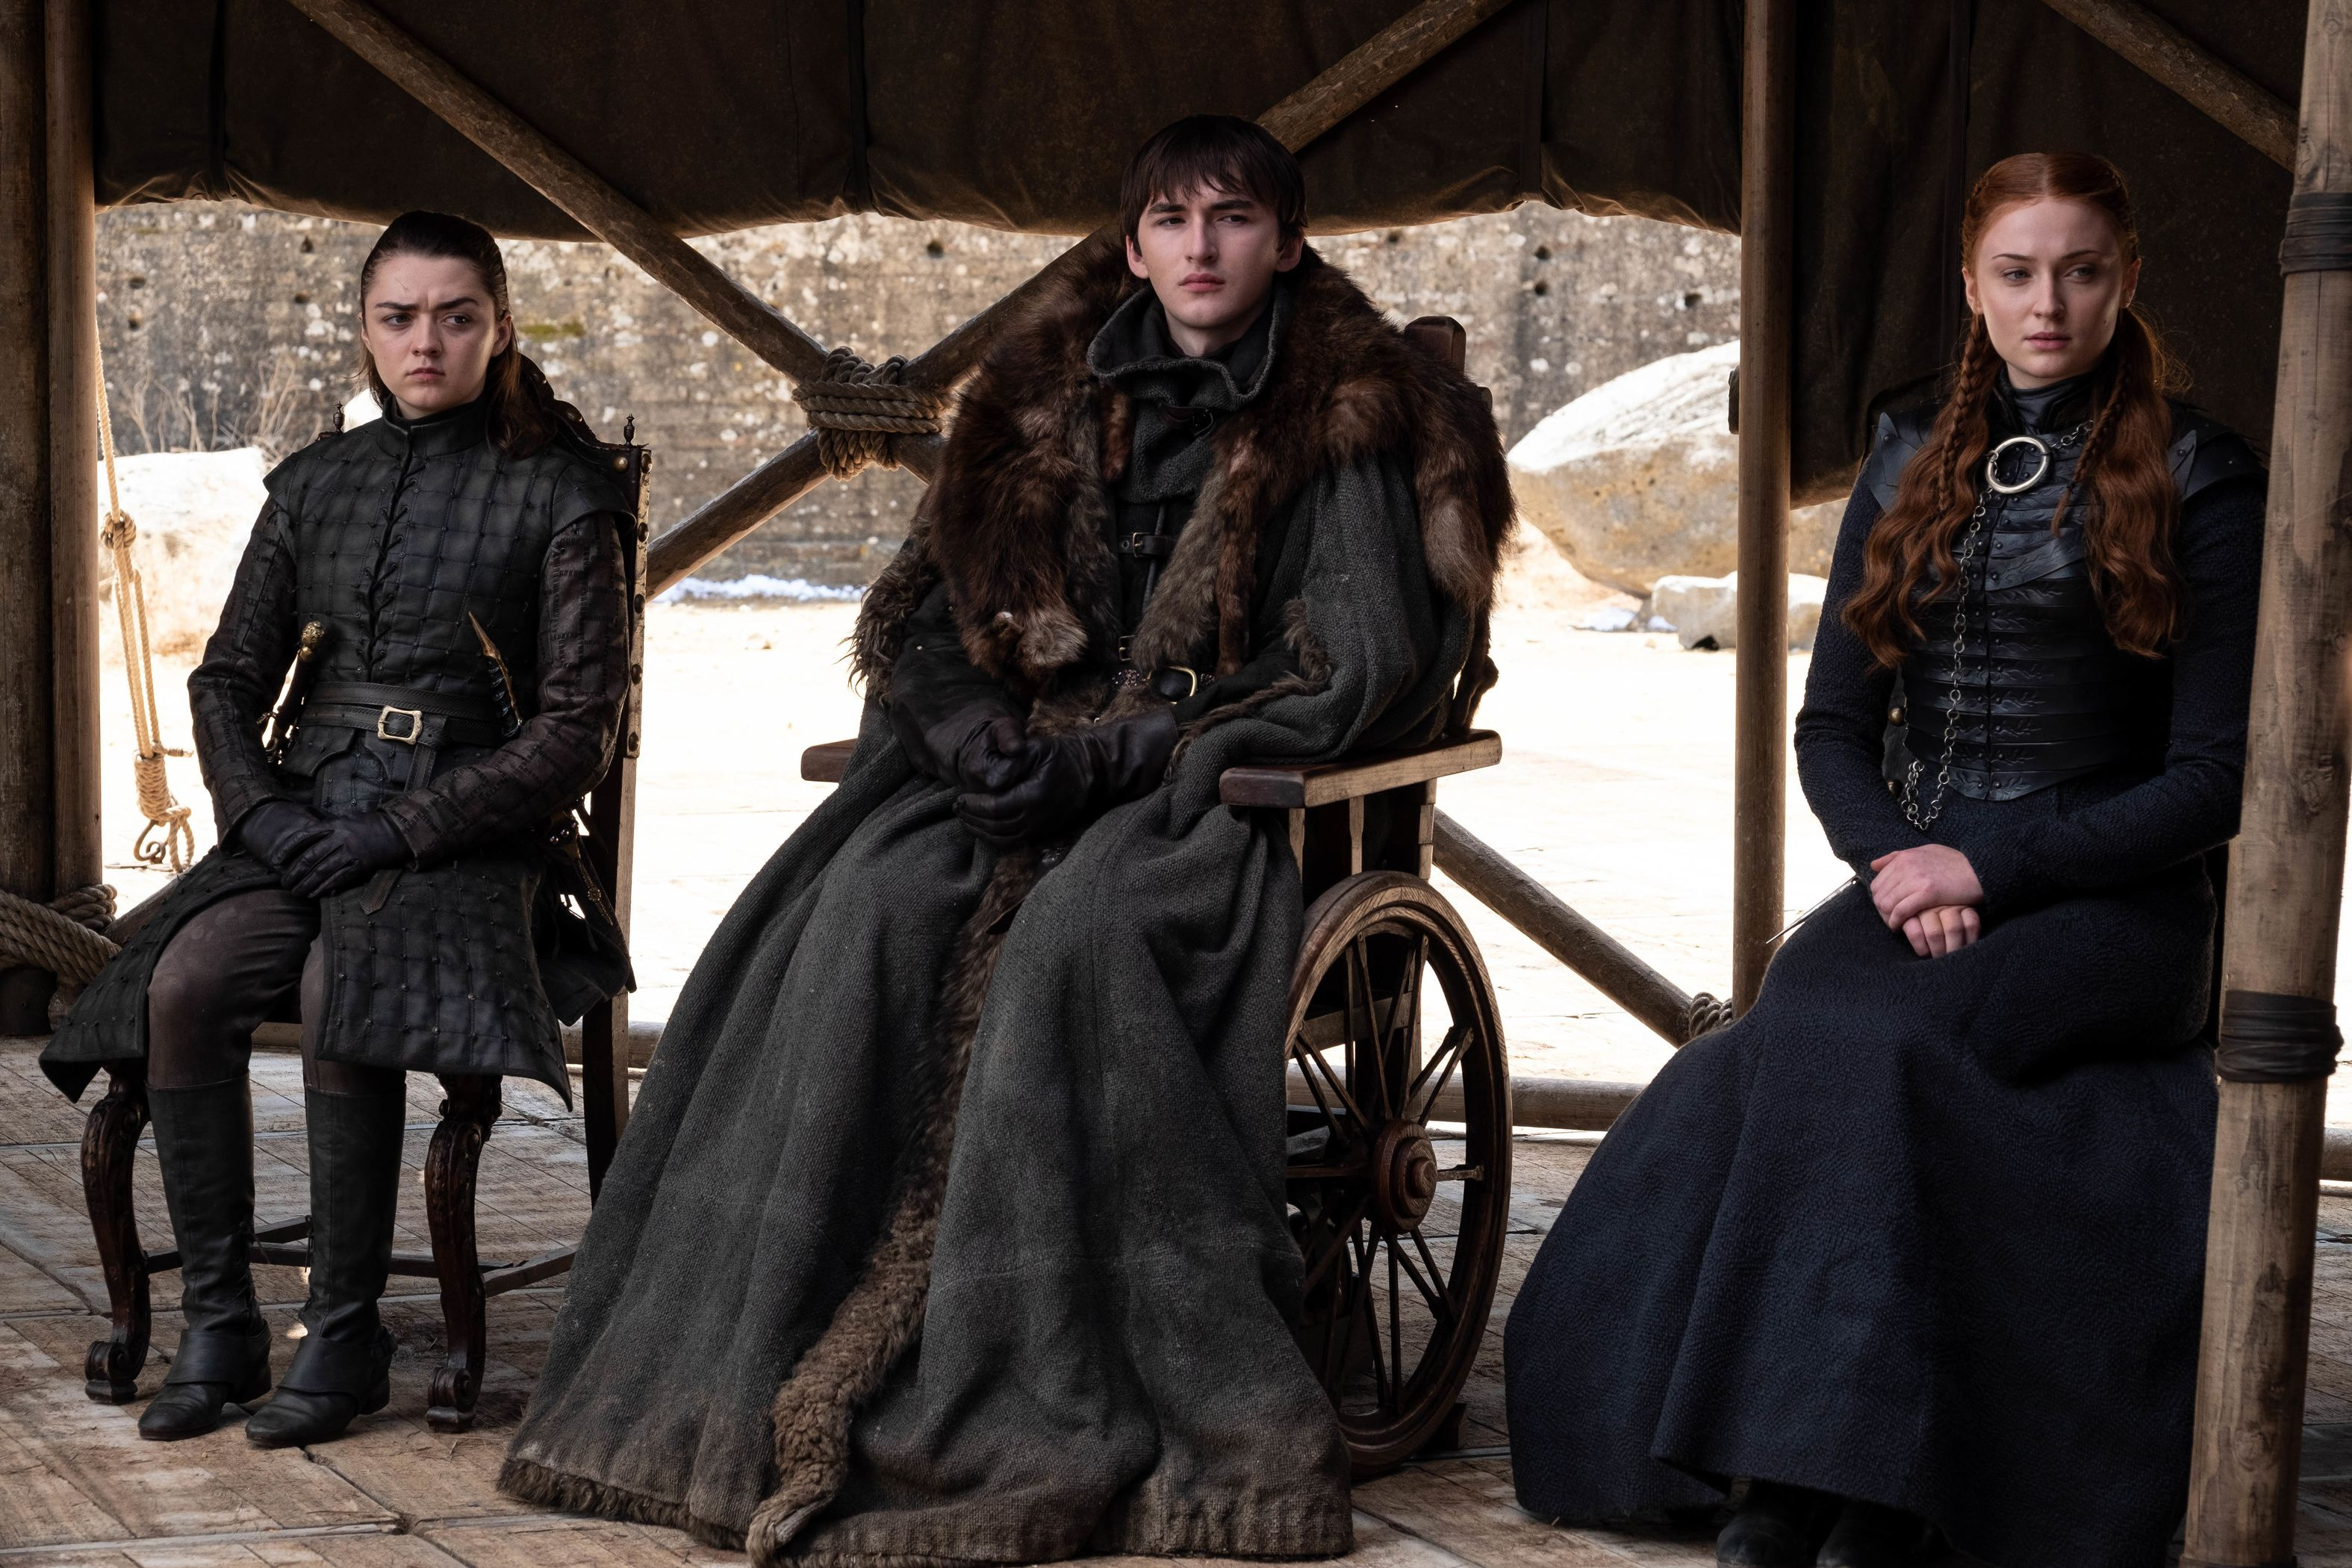 Game of Thrones' Big Finale Twist Is Exactly What George R.R. Martin Has Planned For His Books